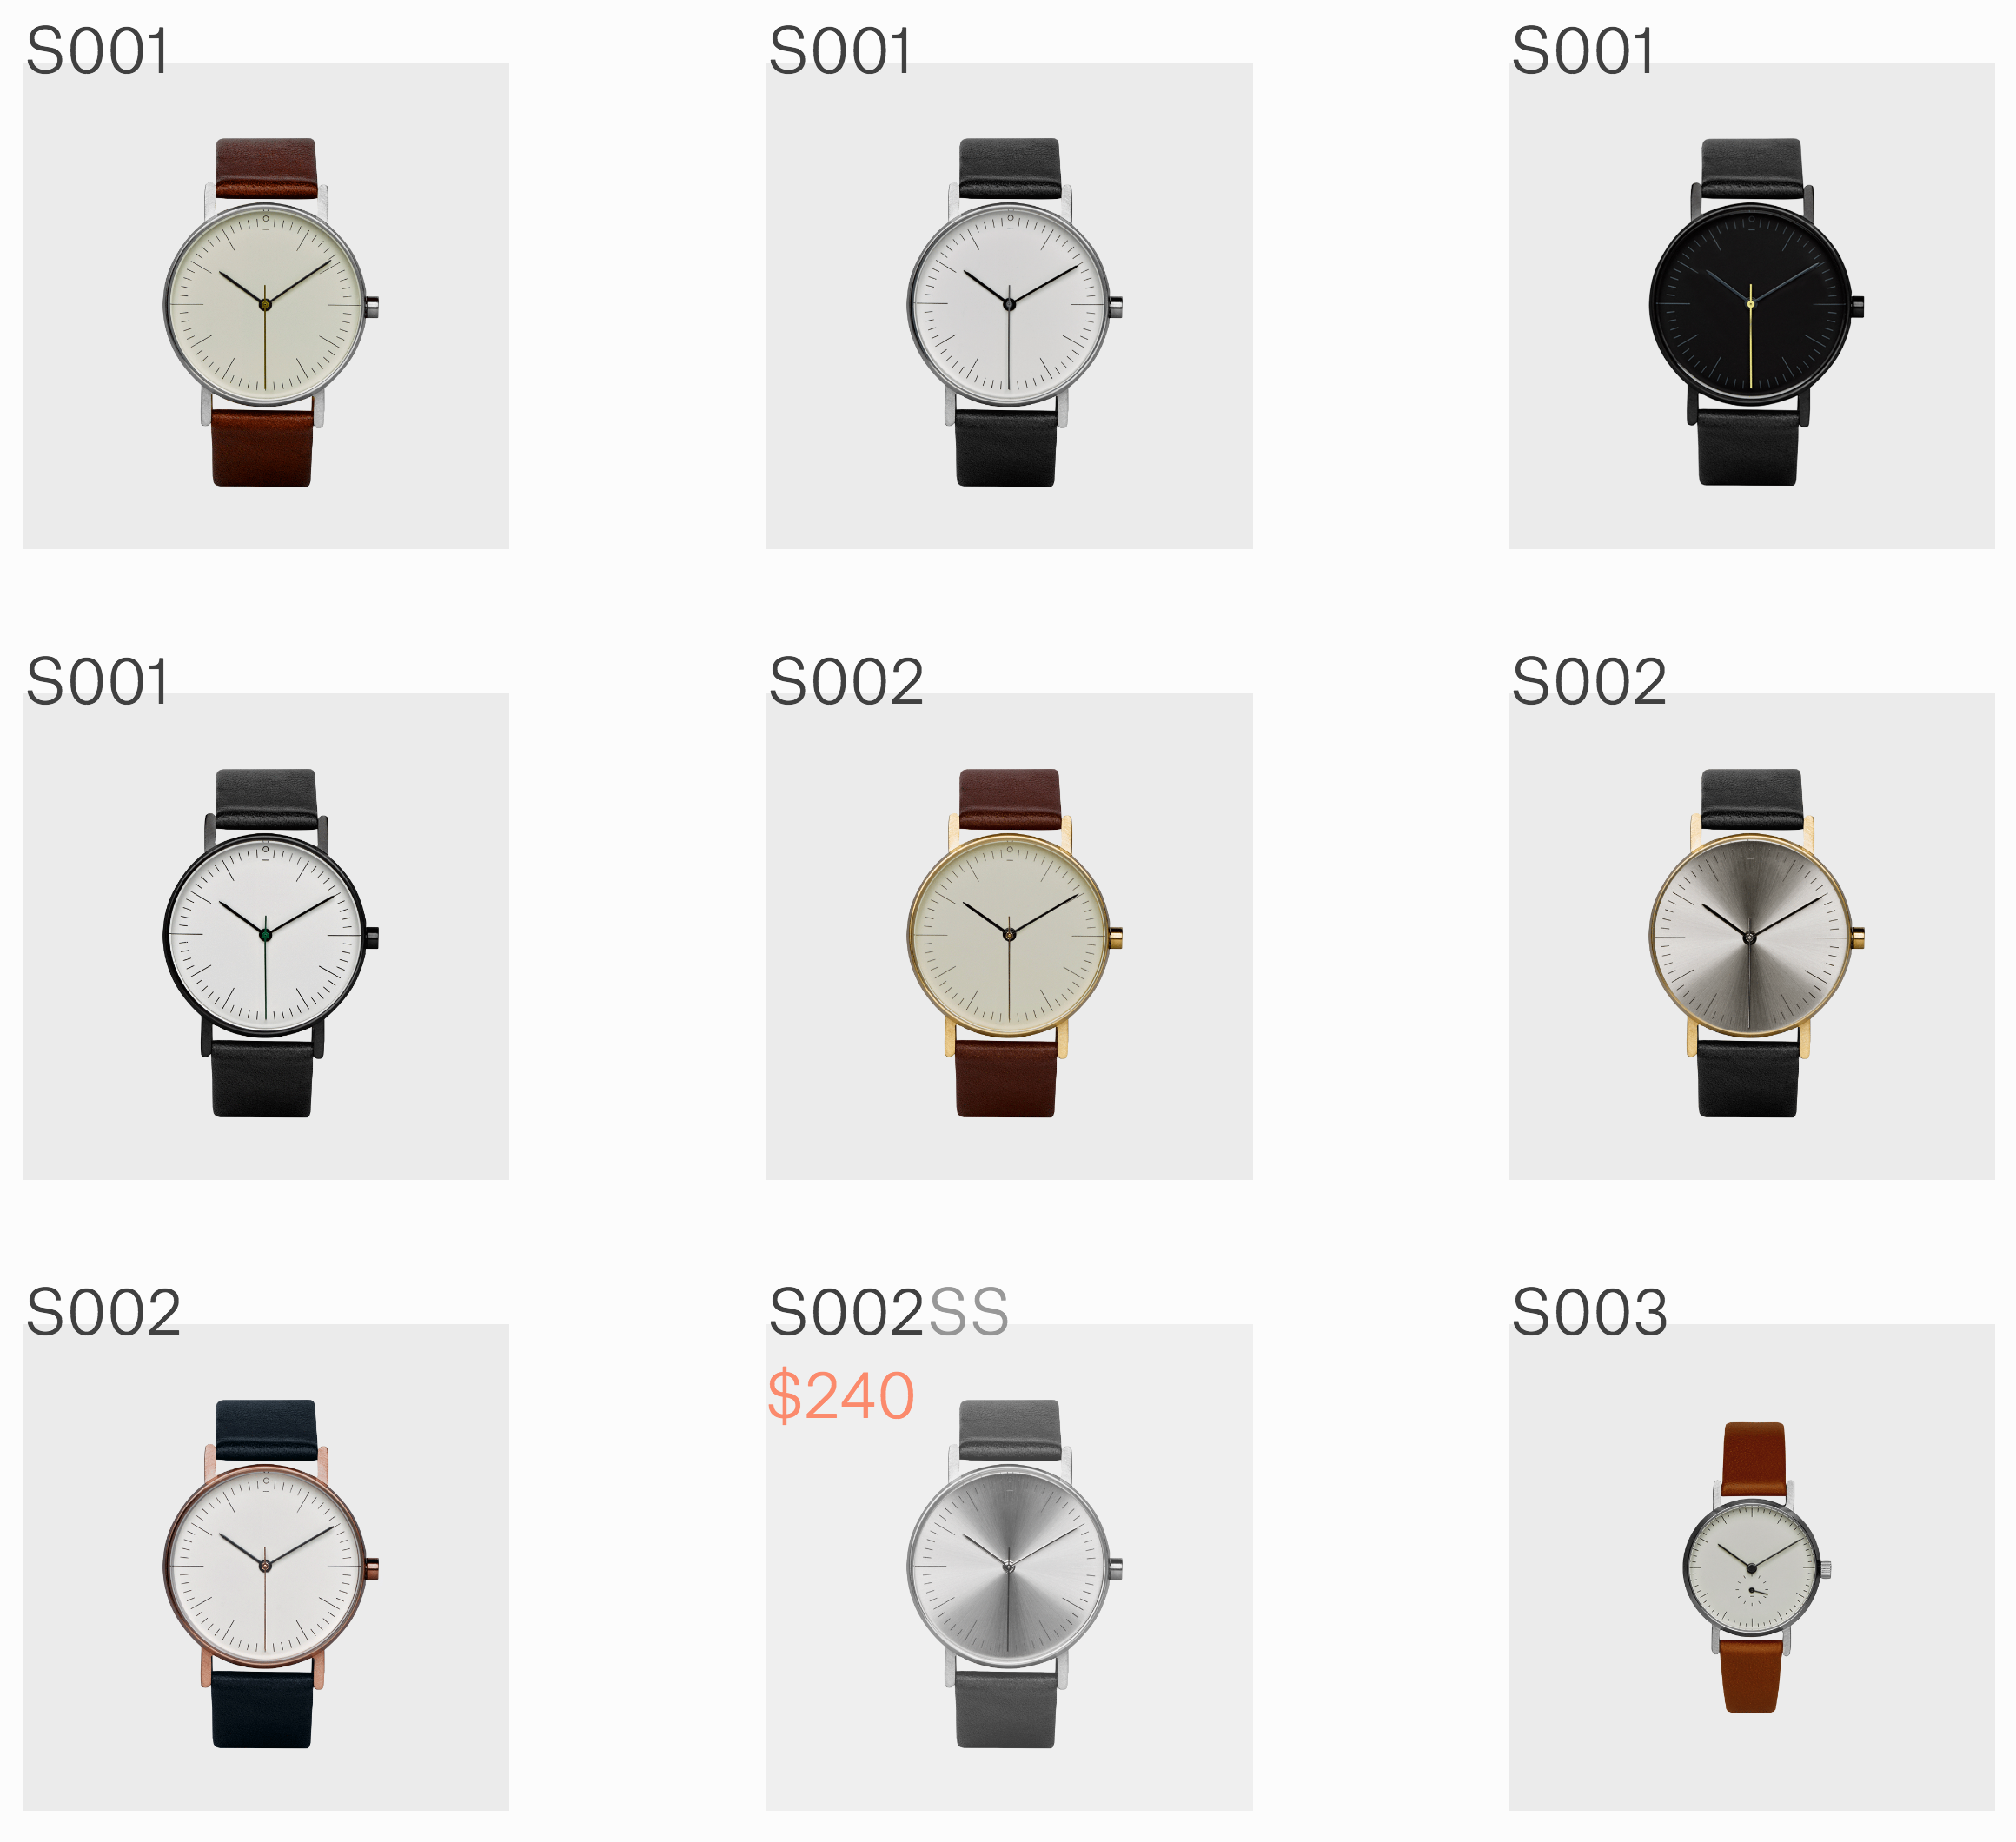 stock_watches_s001-_s002